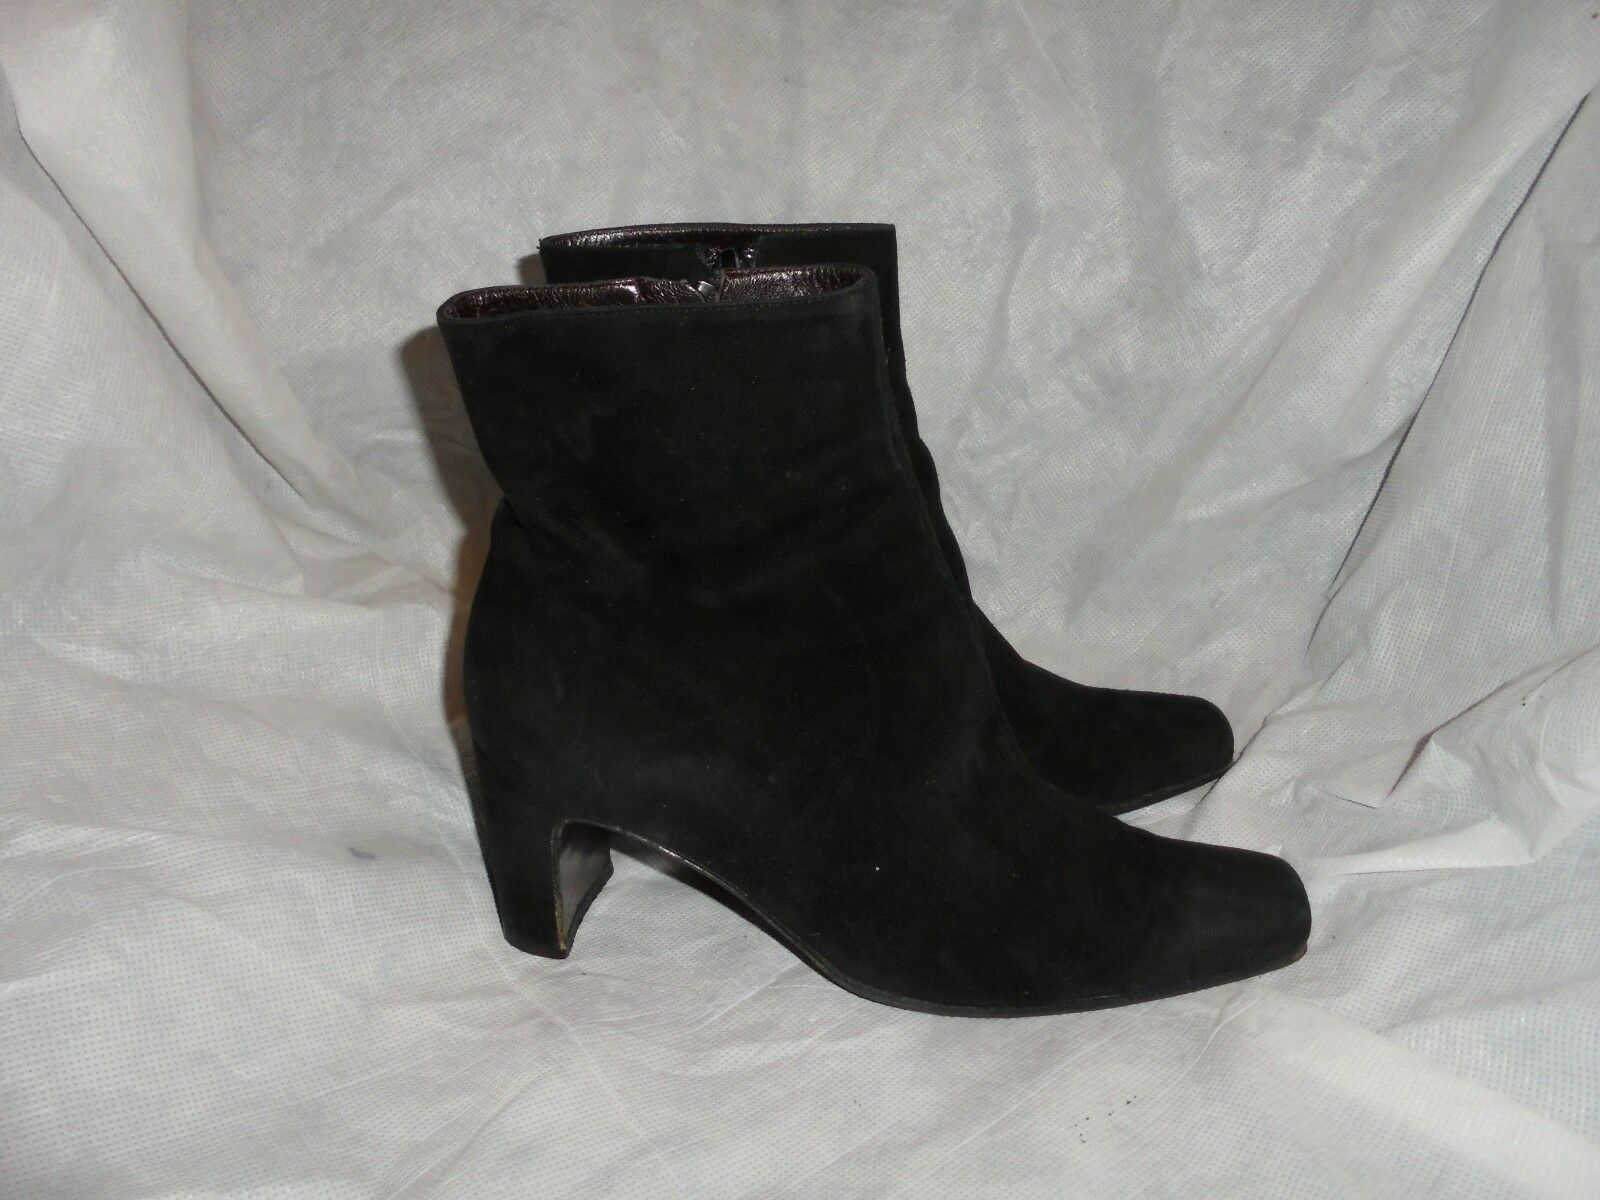 ARMAND0 POLLINI WOMEN BLACK SUEDE  LEATHER ANKLE BOOT SIZE UK 4.5 EU 37.5 VGC